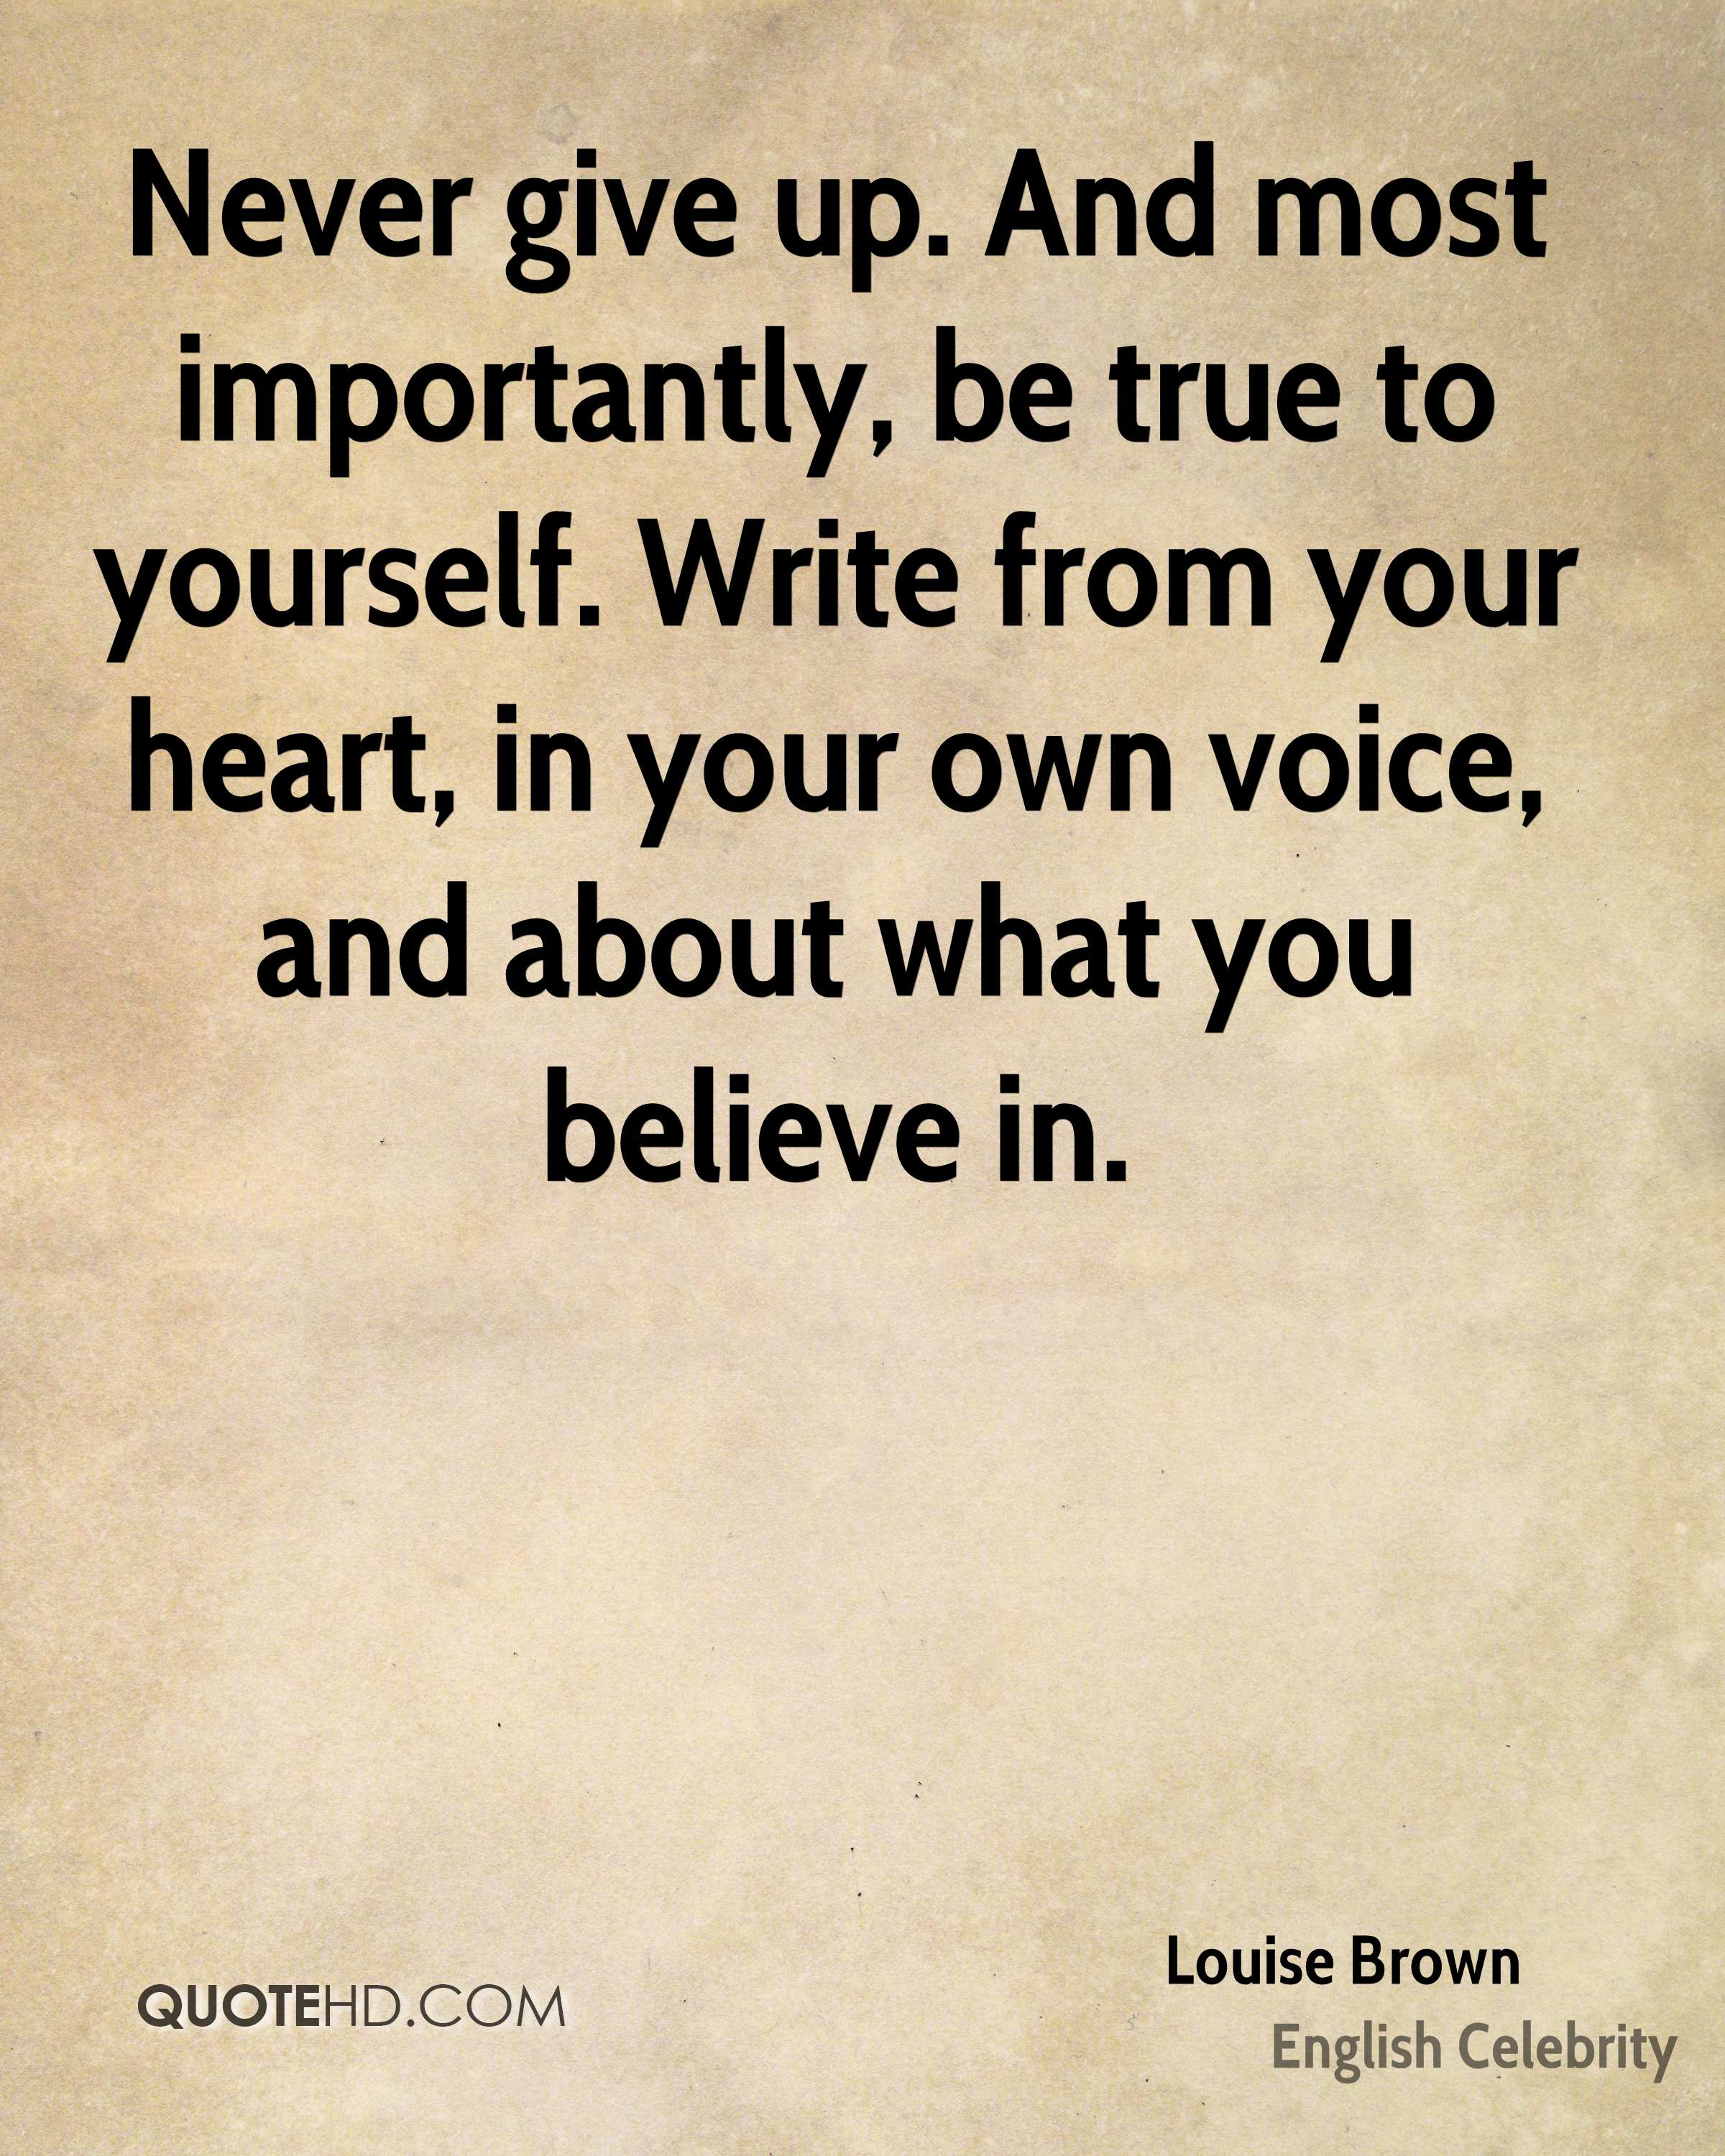 Never give up. And most importantly, be true to yourself. Write from your heart, in your own voice, and about what you believe in.